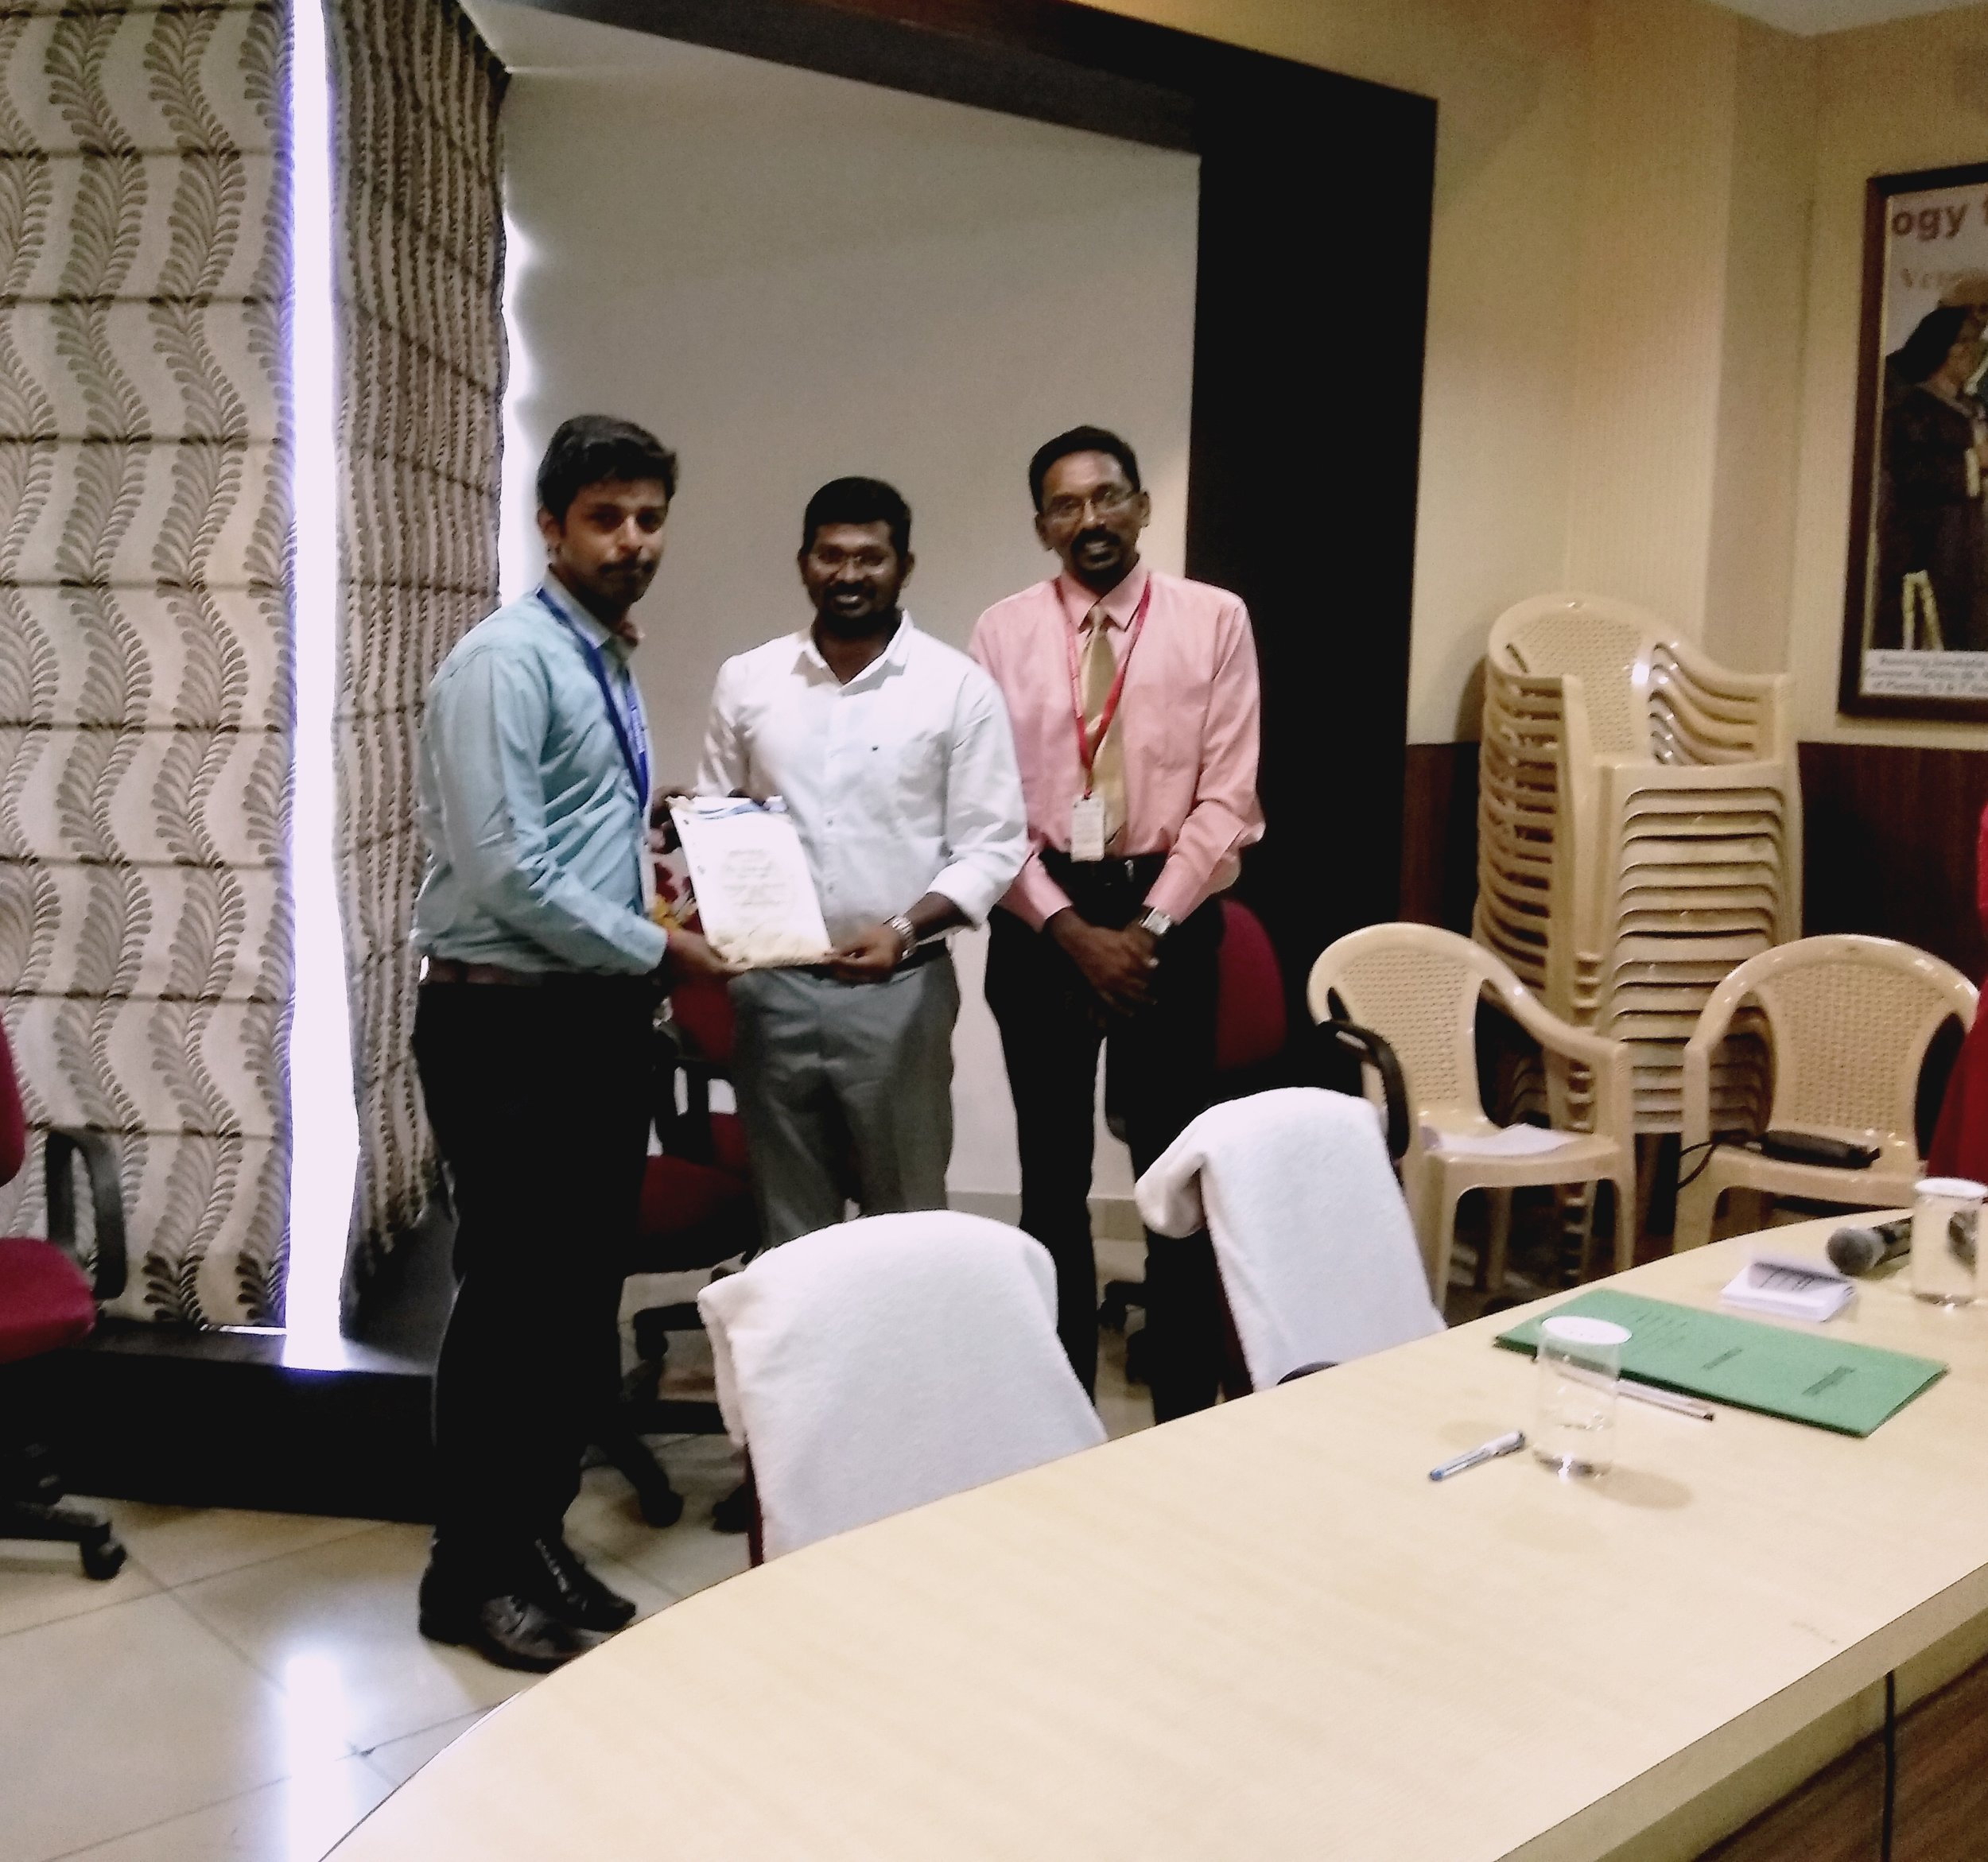 Best Paper - Dr. Shiva Shankar - III year Post GraduateTitle: Oral health related quality of life and its relationship to oral health status among fisherman population in Pondichery - A Cross Sectional study.